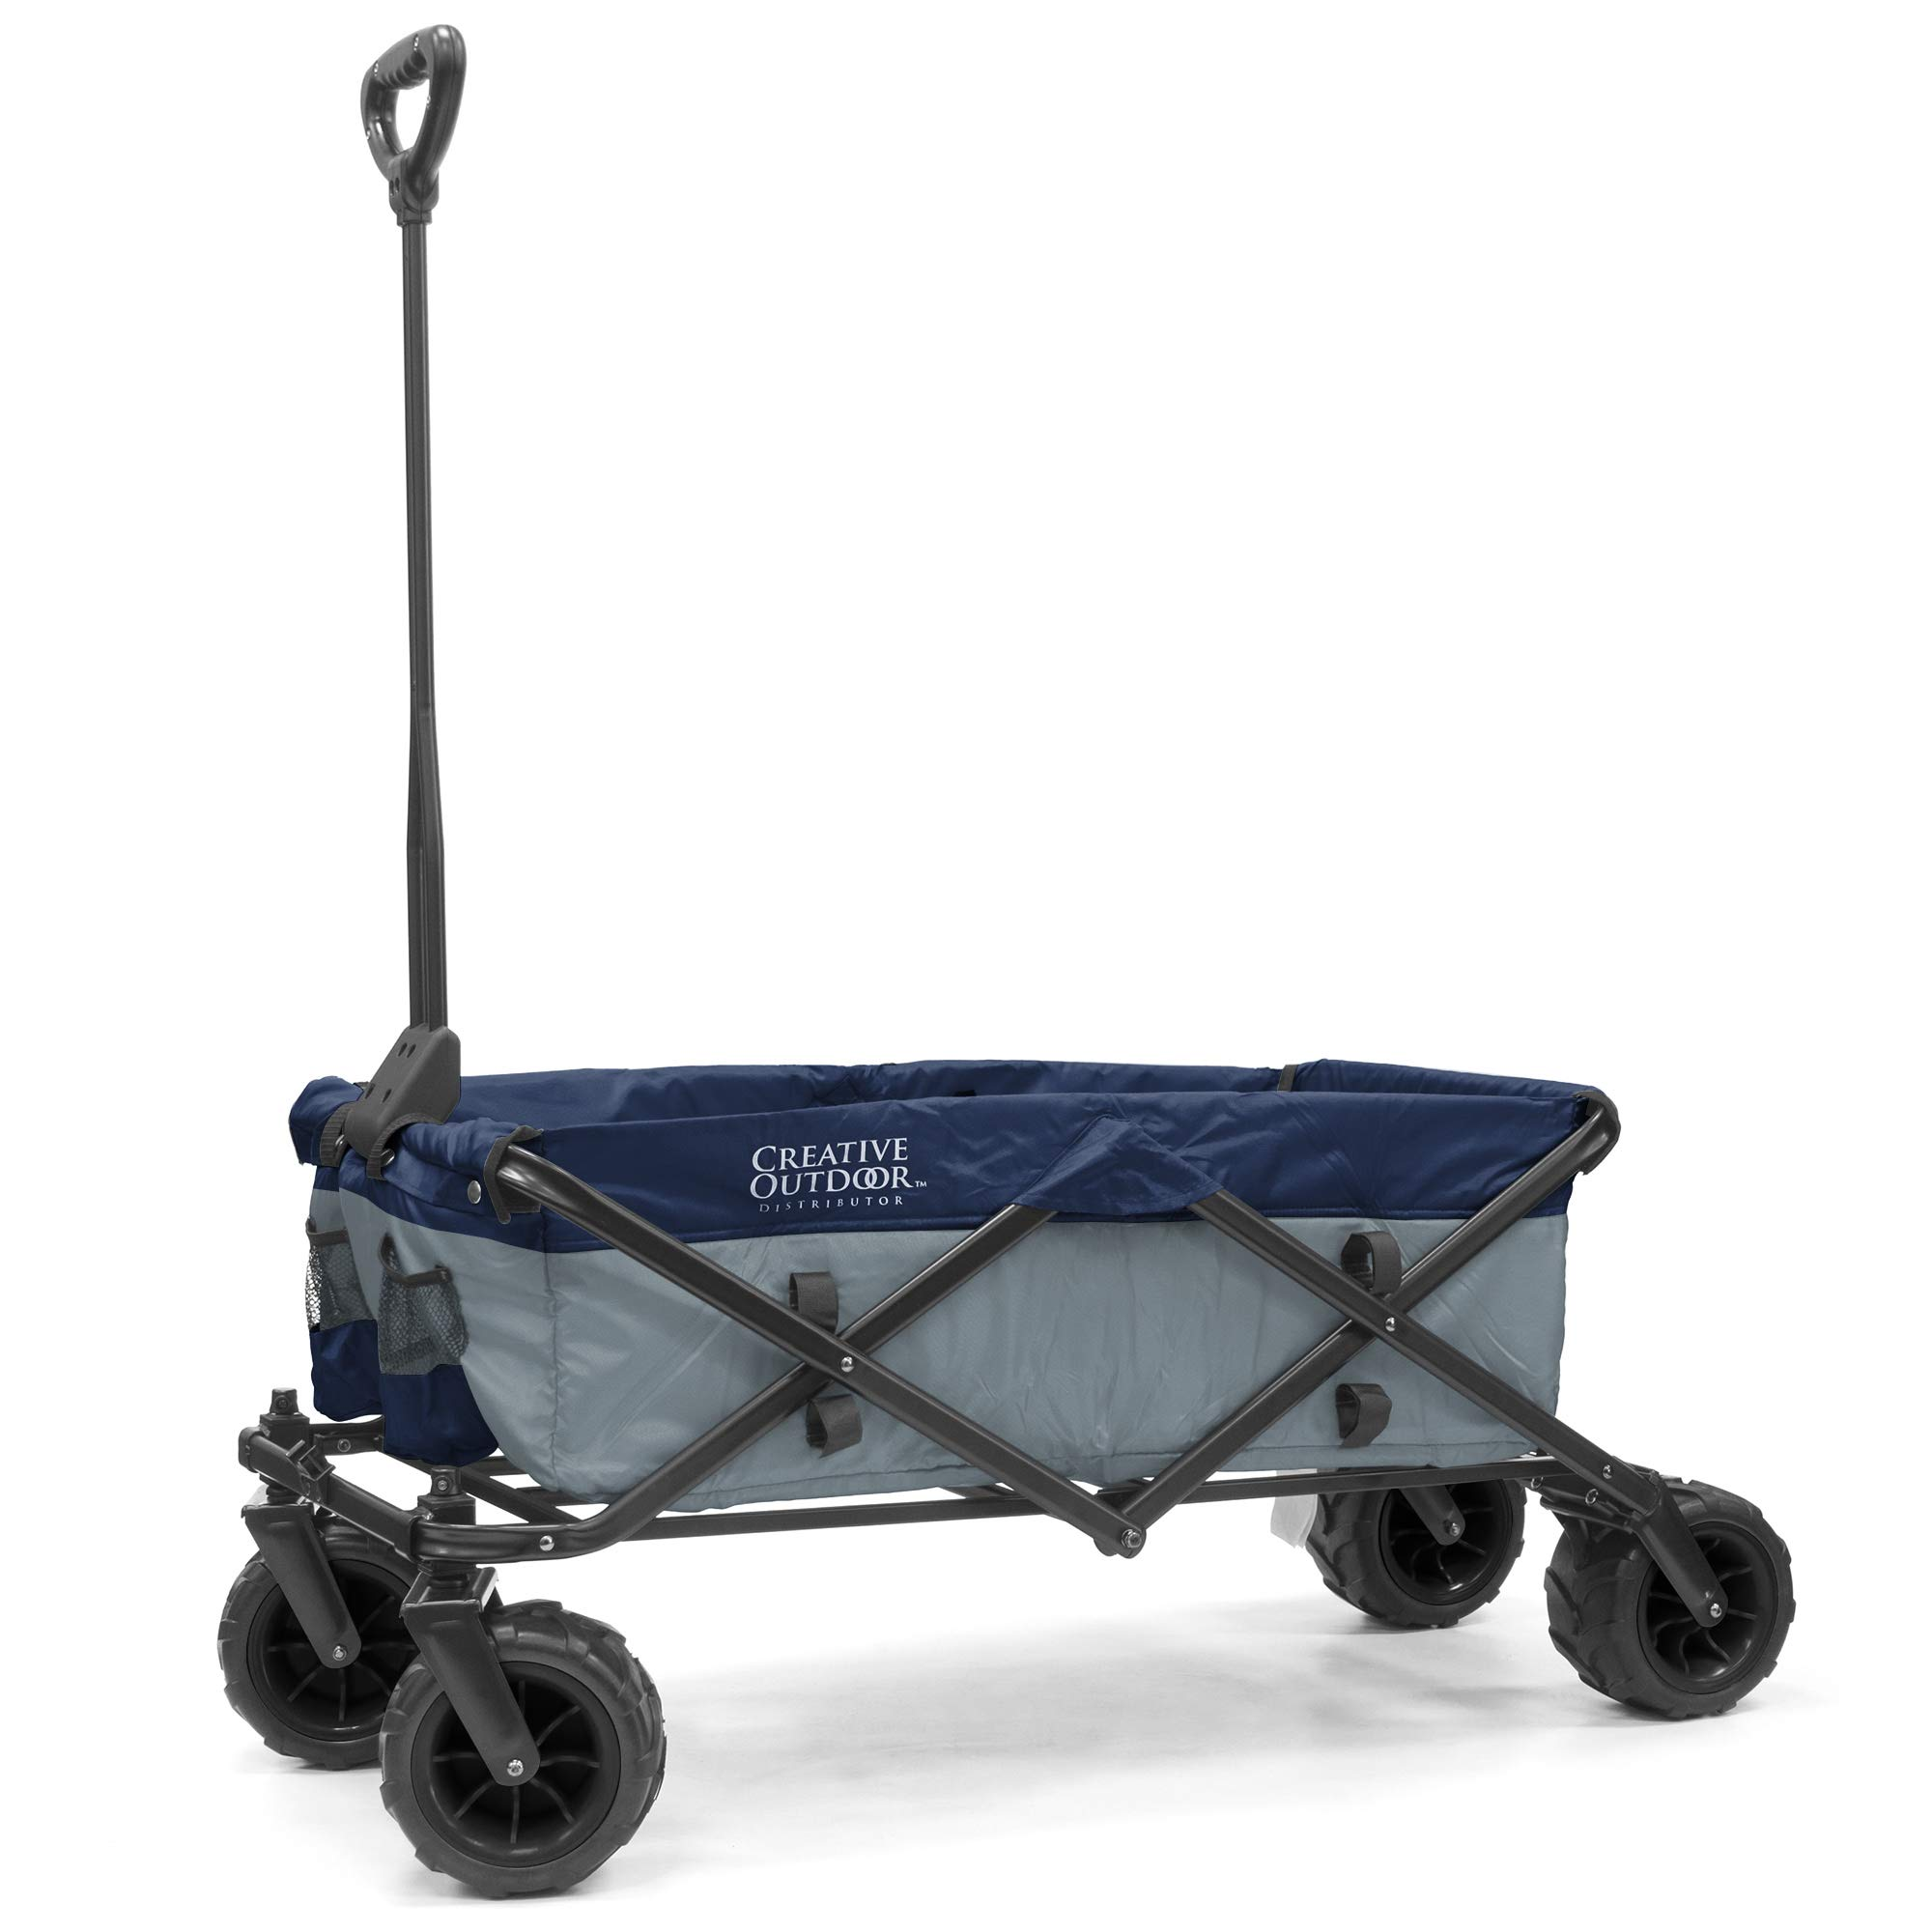 Creative Outdoor Collapsible Folding Wagon Cart for Kids and Pets | All Terrain | Beach Park Garden Sports & Camping (Gray/Navy)